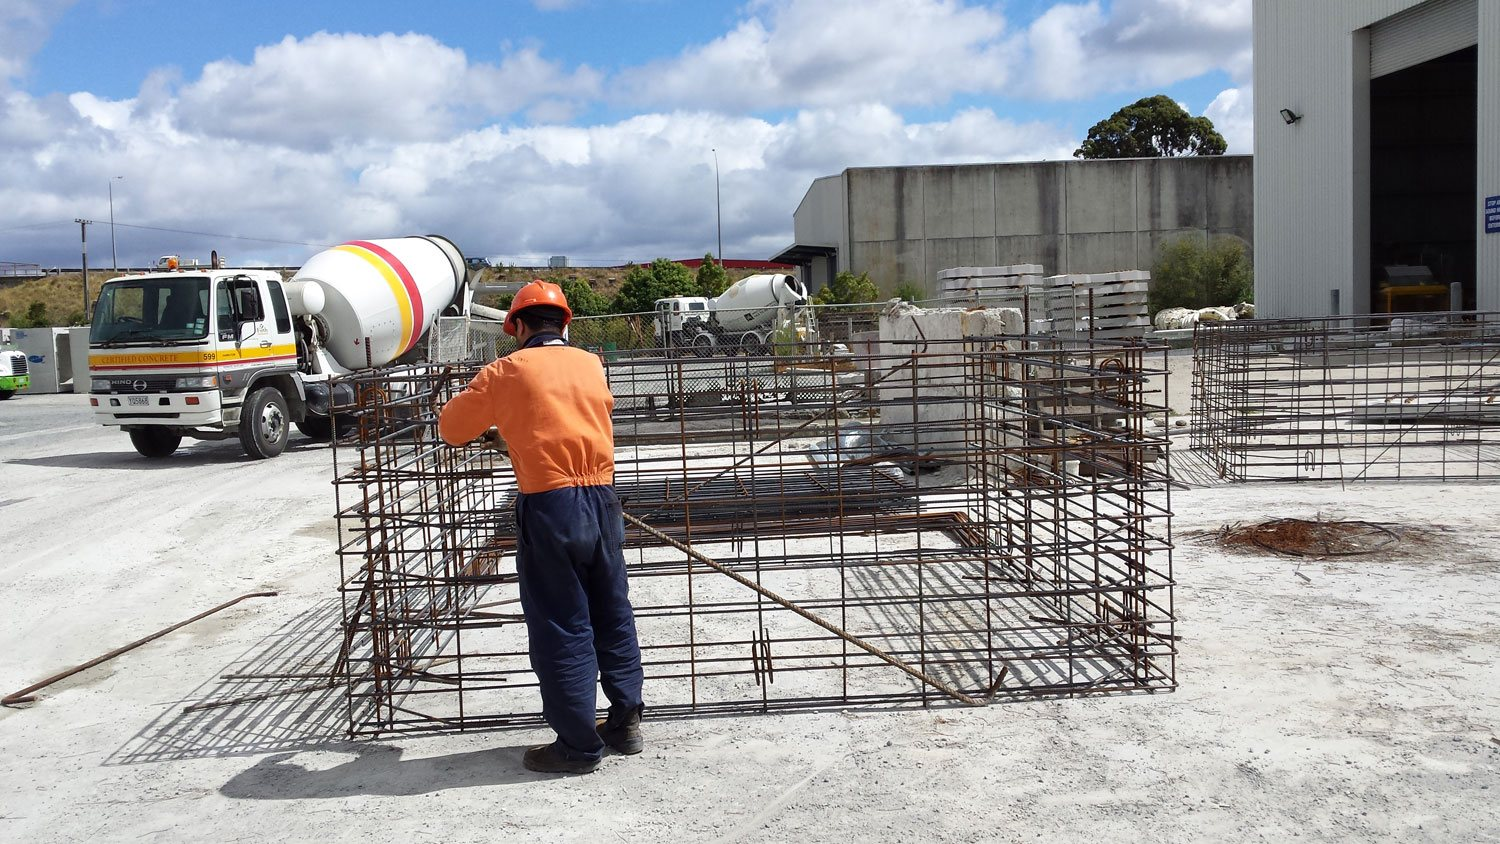 man working on precast unit made of cut and welded rebar.